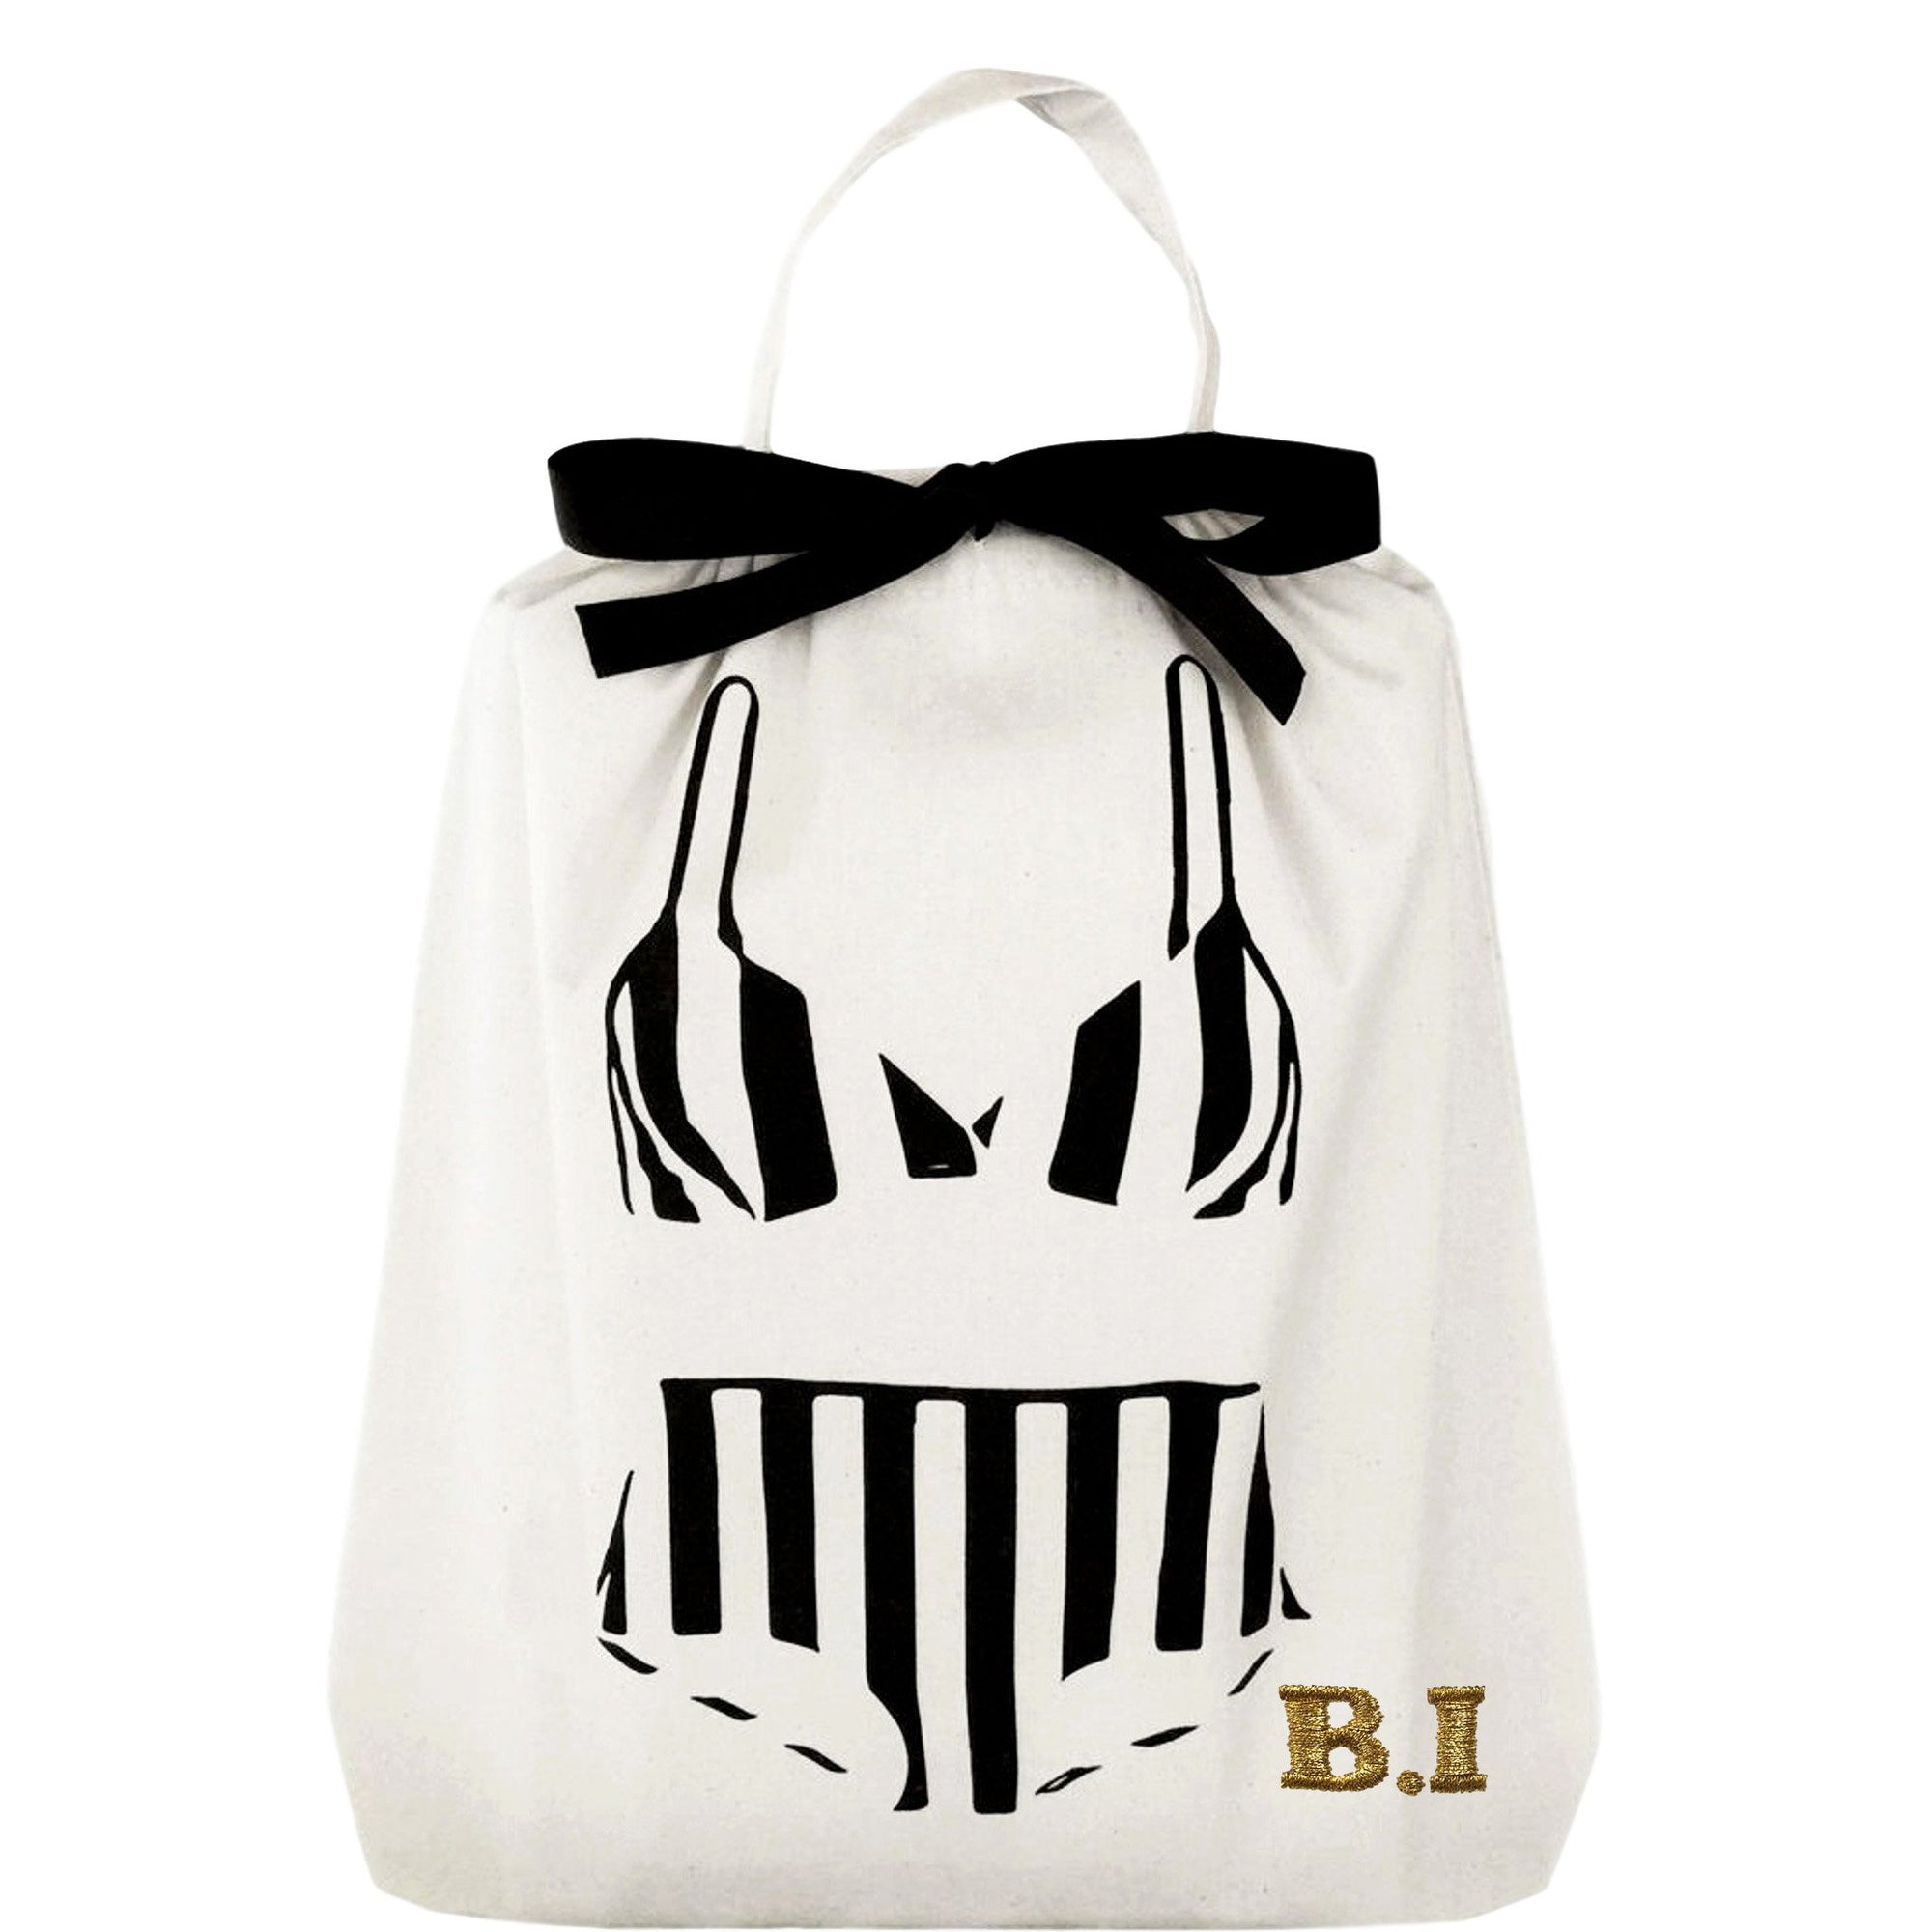 Bikini Bag Old School - Bag-all Paris